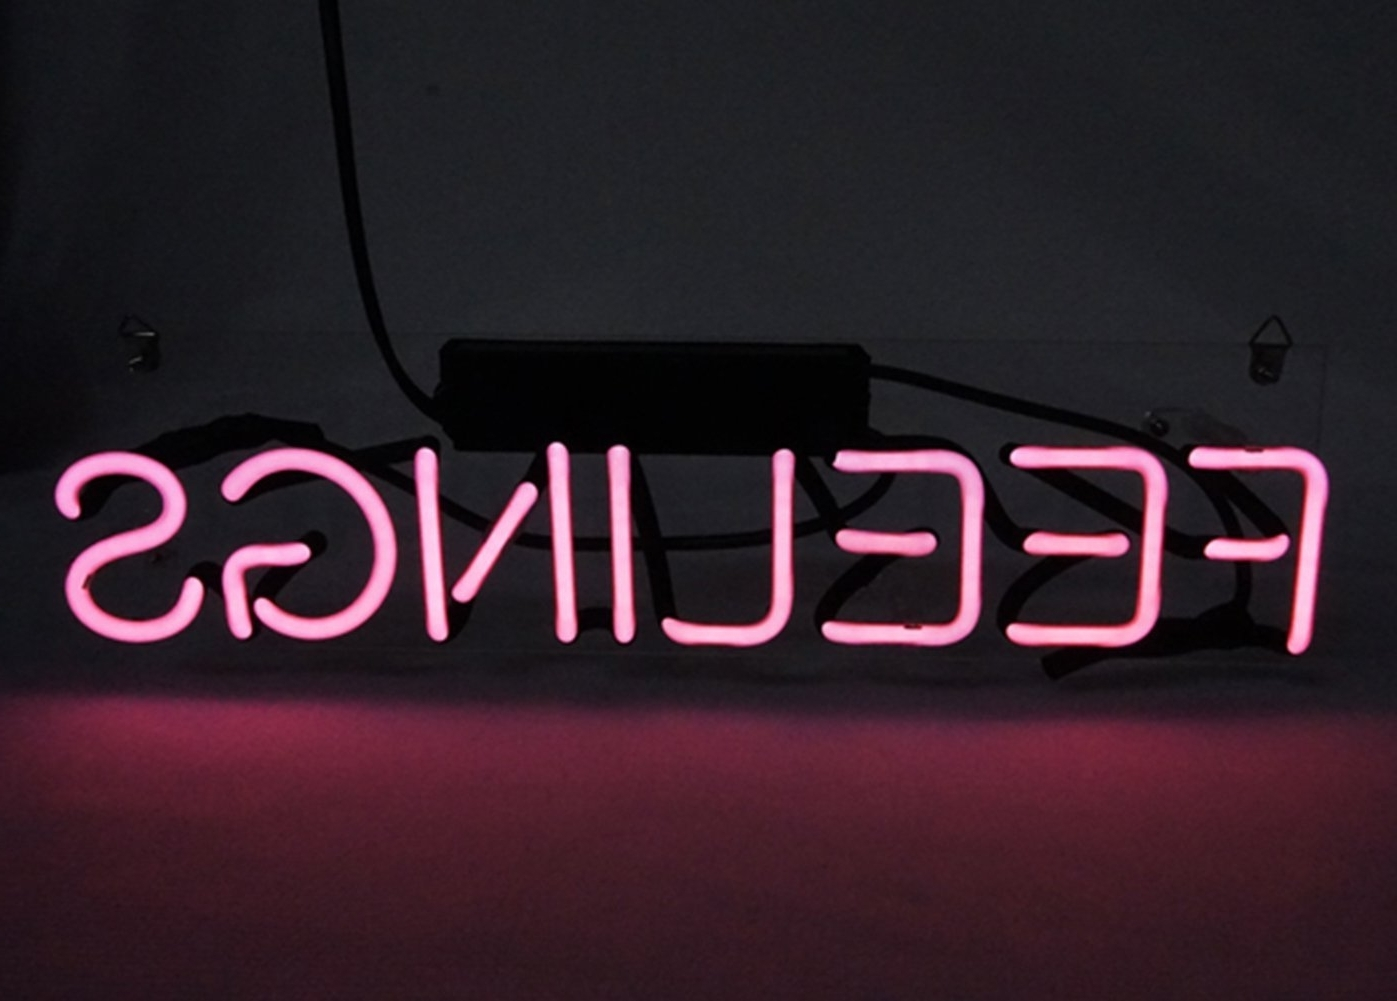 Most Current New Love Neon Sign 'feelings' Cool Led Lamp Light Decoration (View 9 of 15)